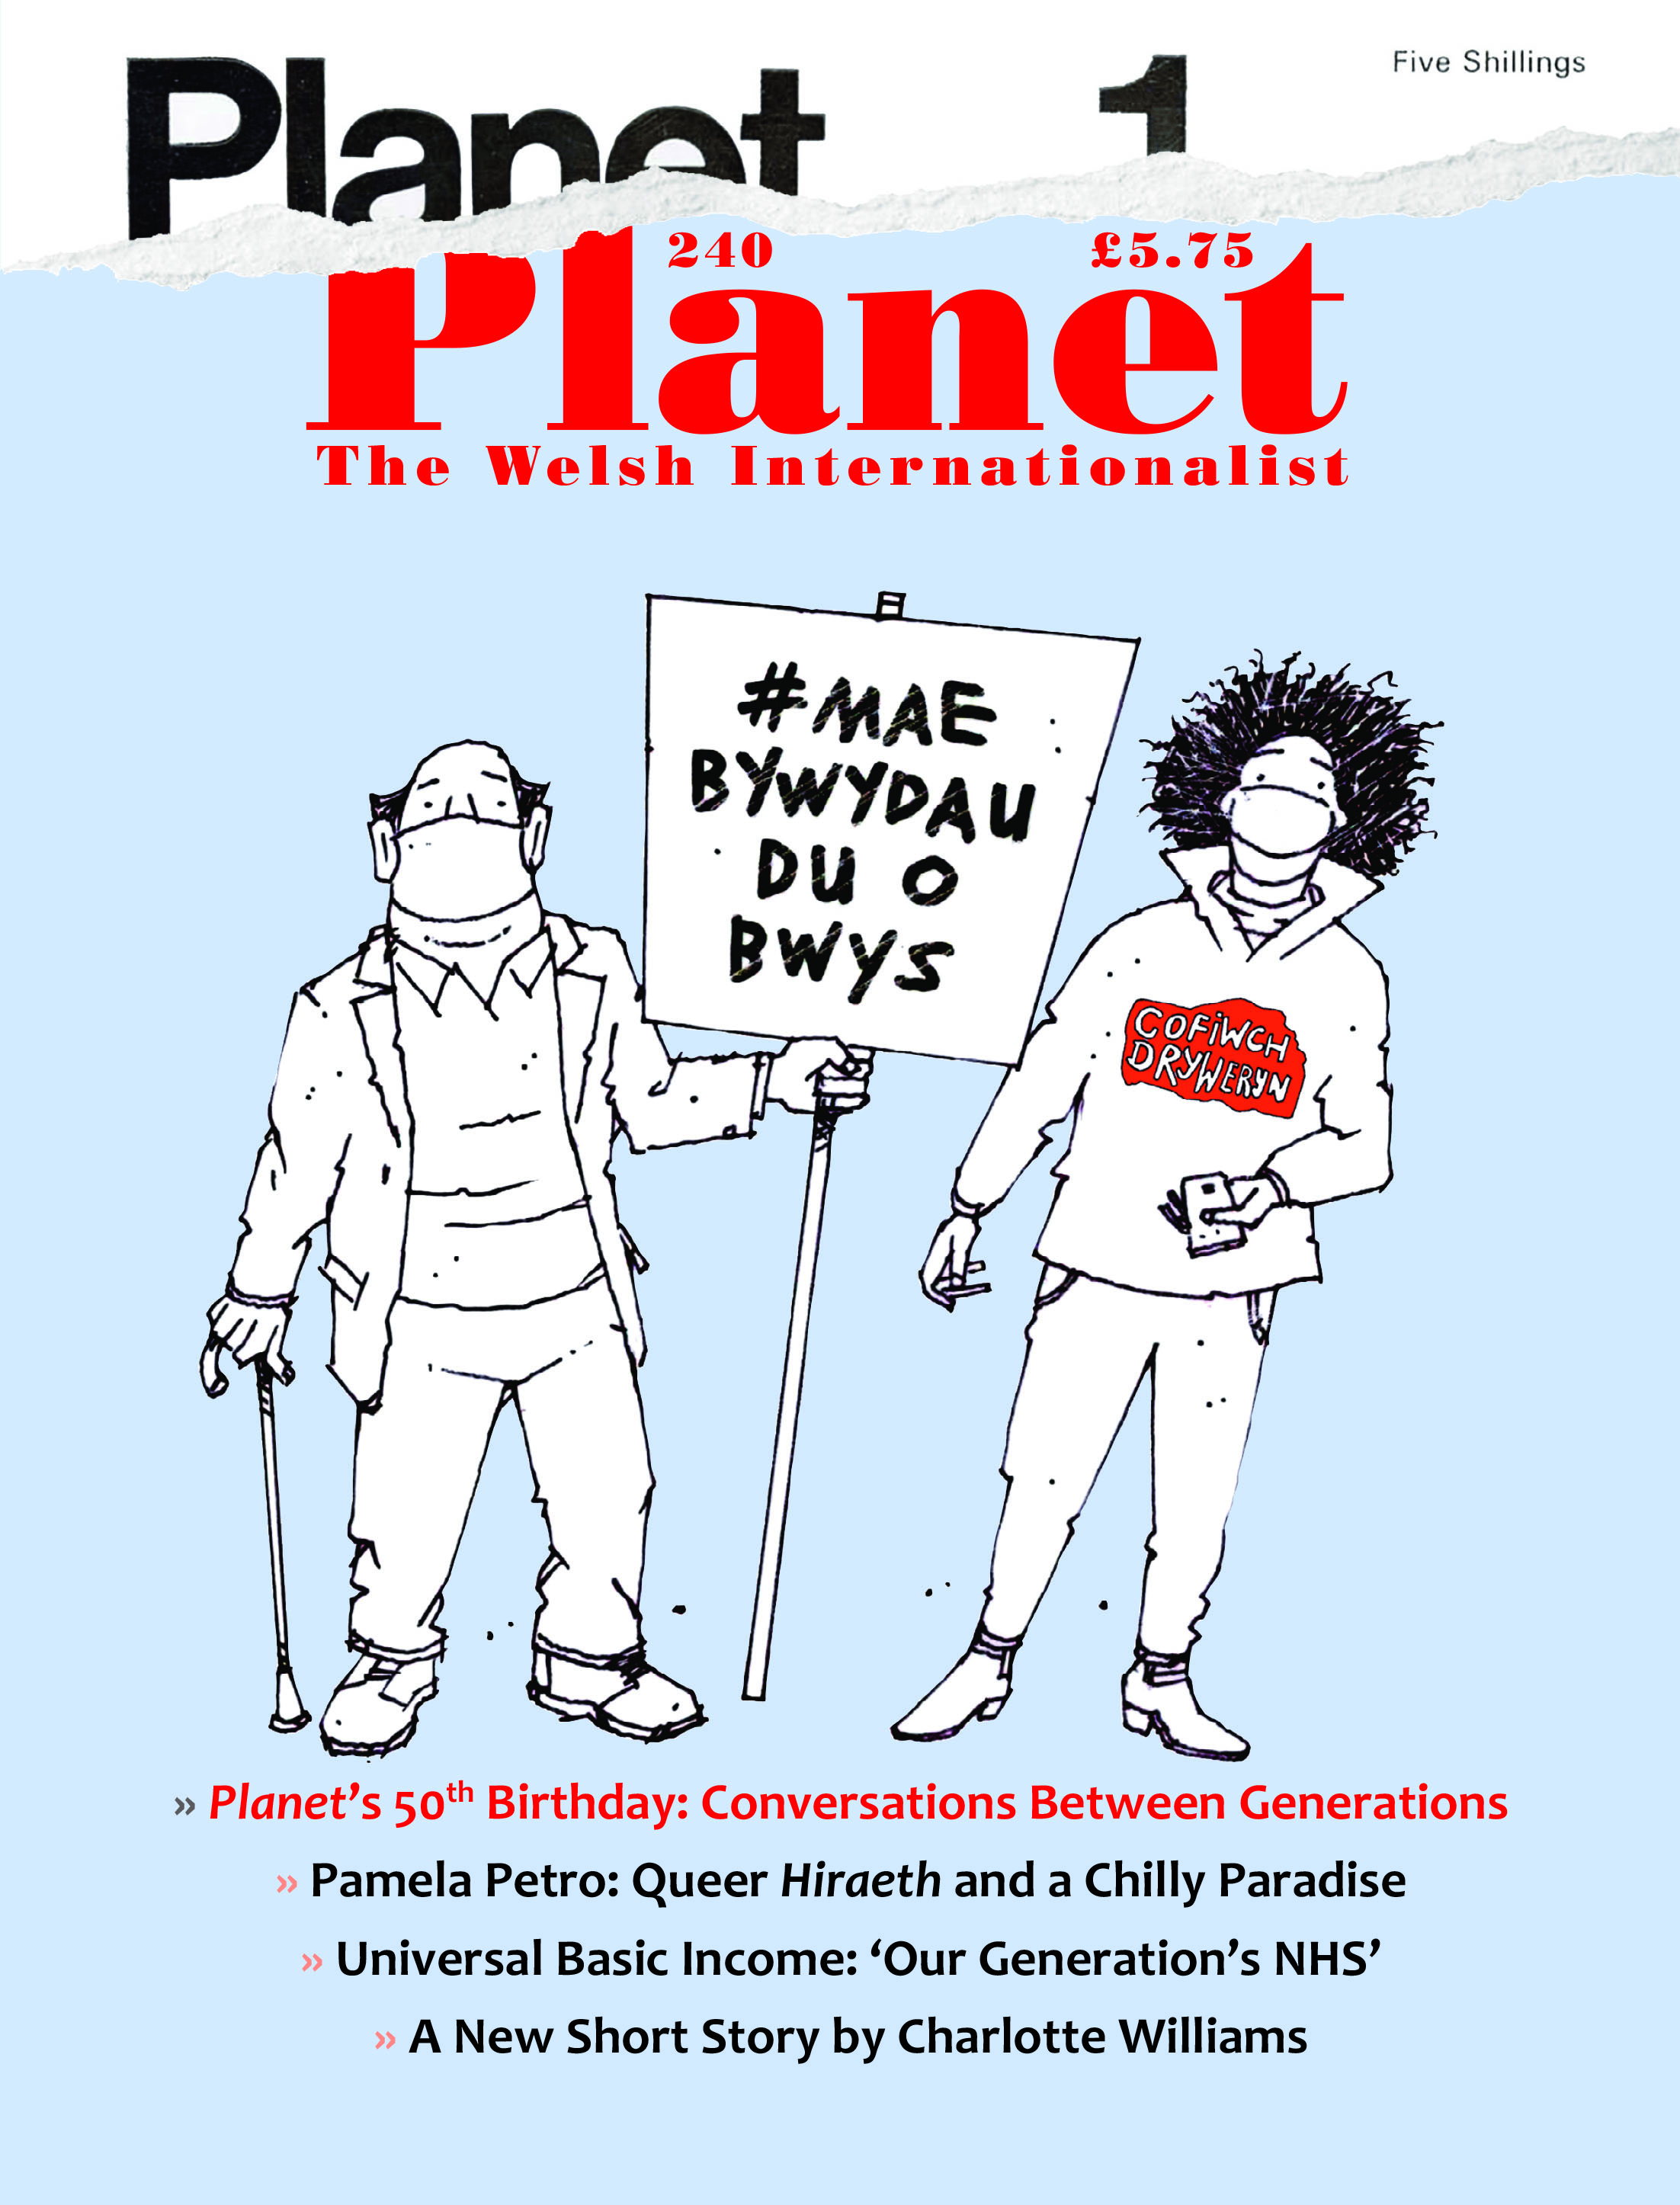 Cover of Planet Edition 240